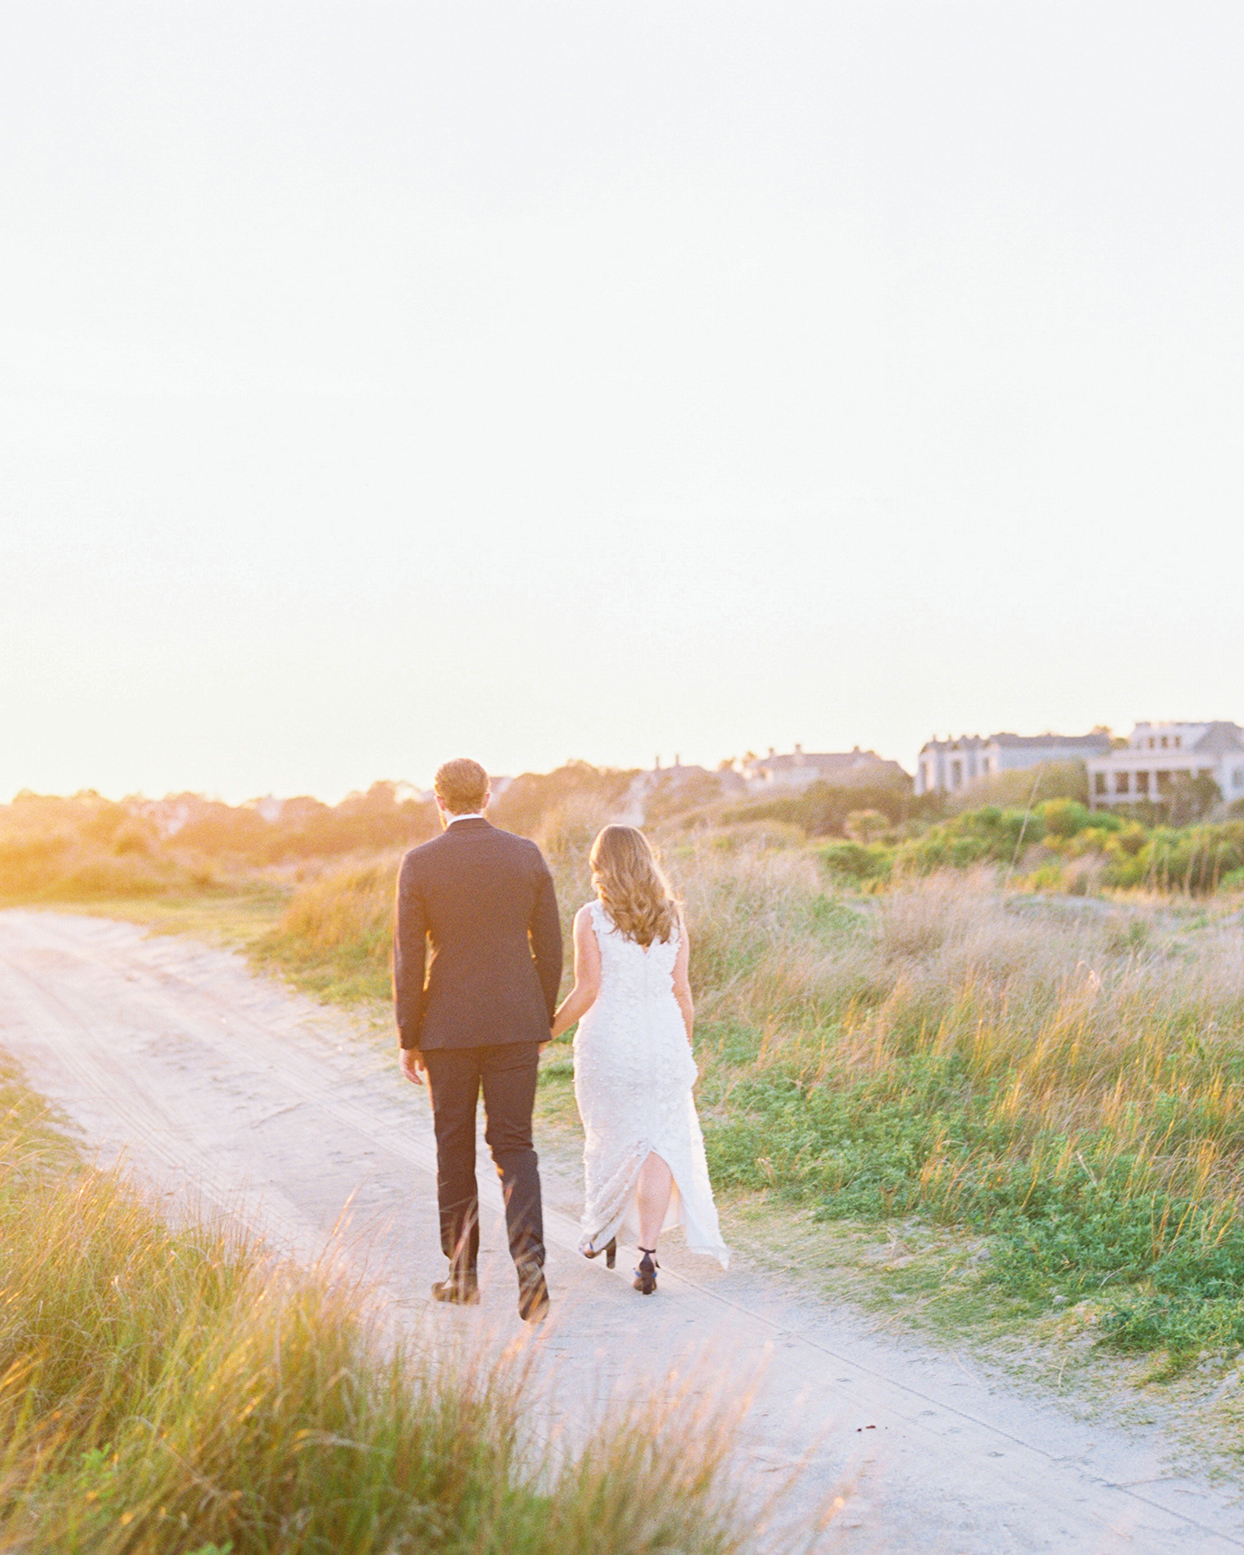 lauren dan wedding couple walking along sandy path